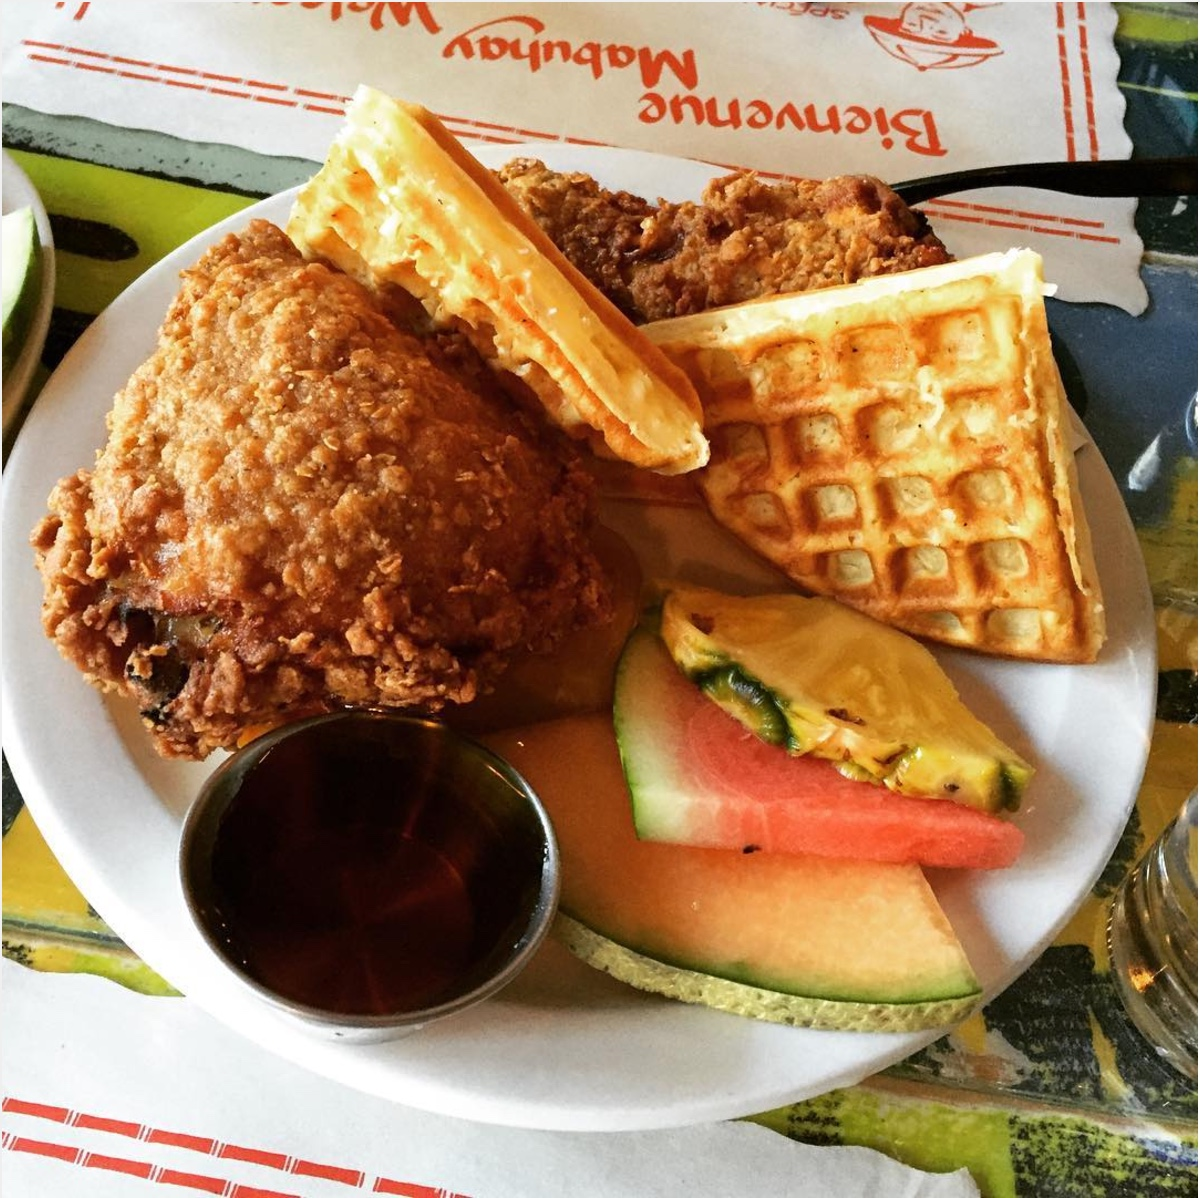 Delicious fried chicken and waffle from Junior